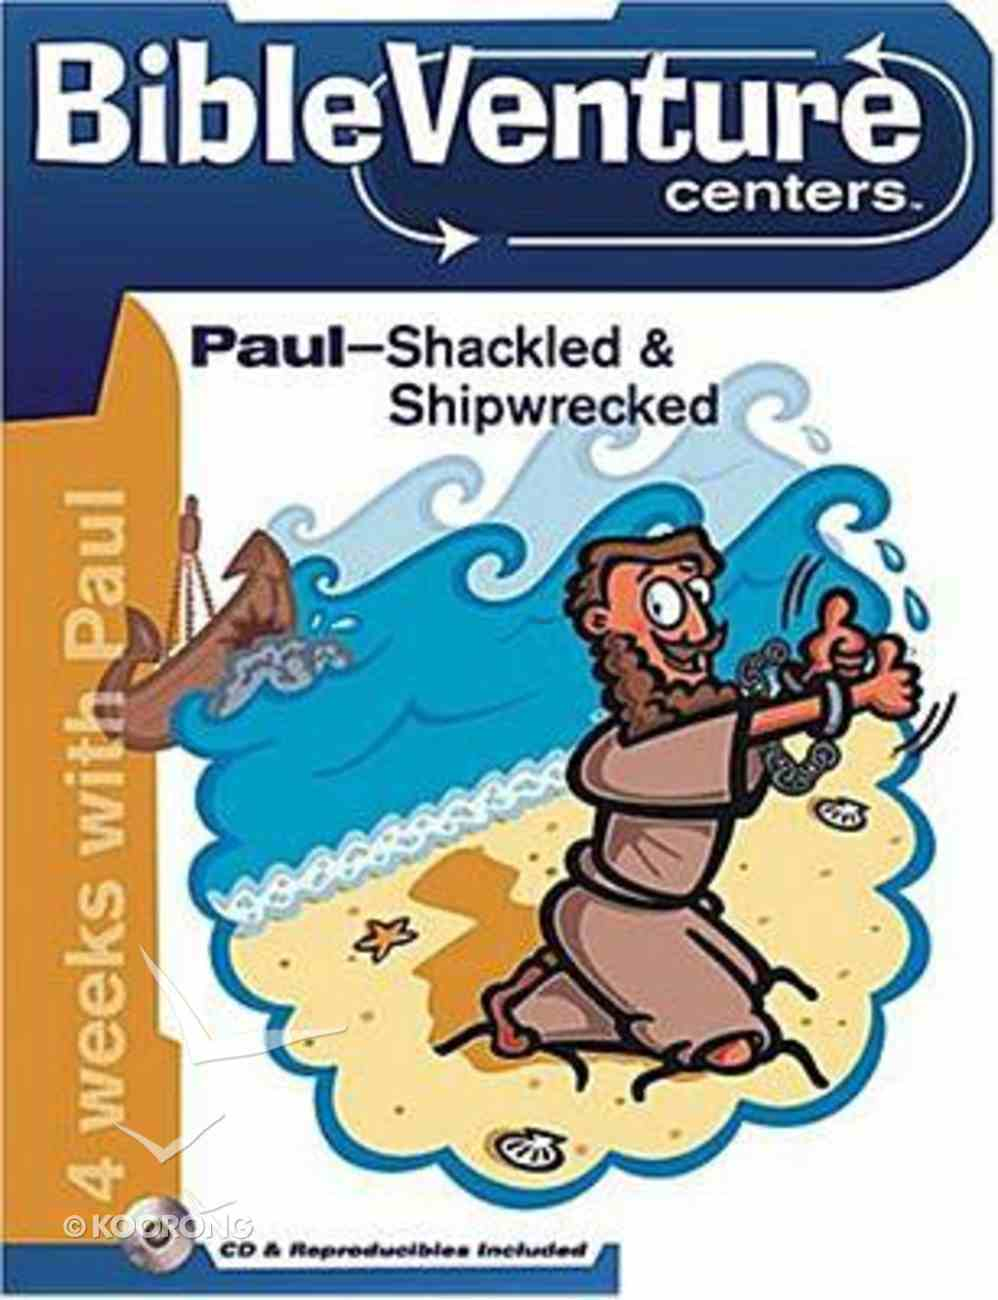 Paul-Shackled & Shipwrecked (Bibleventure Centers Series) Paperback